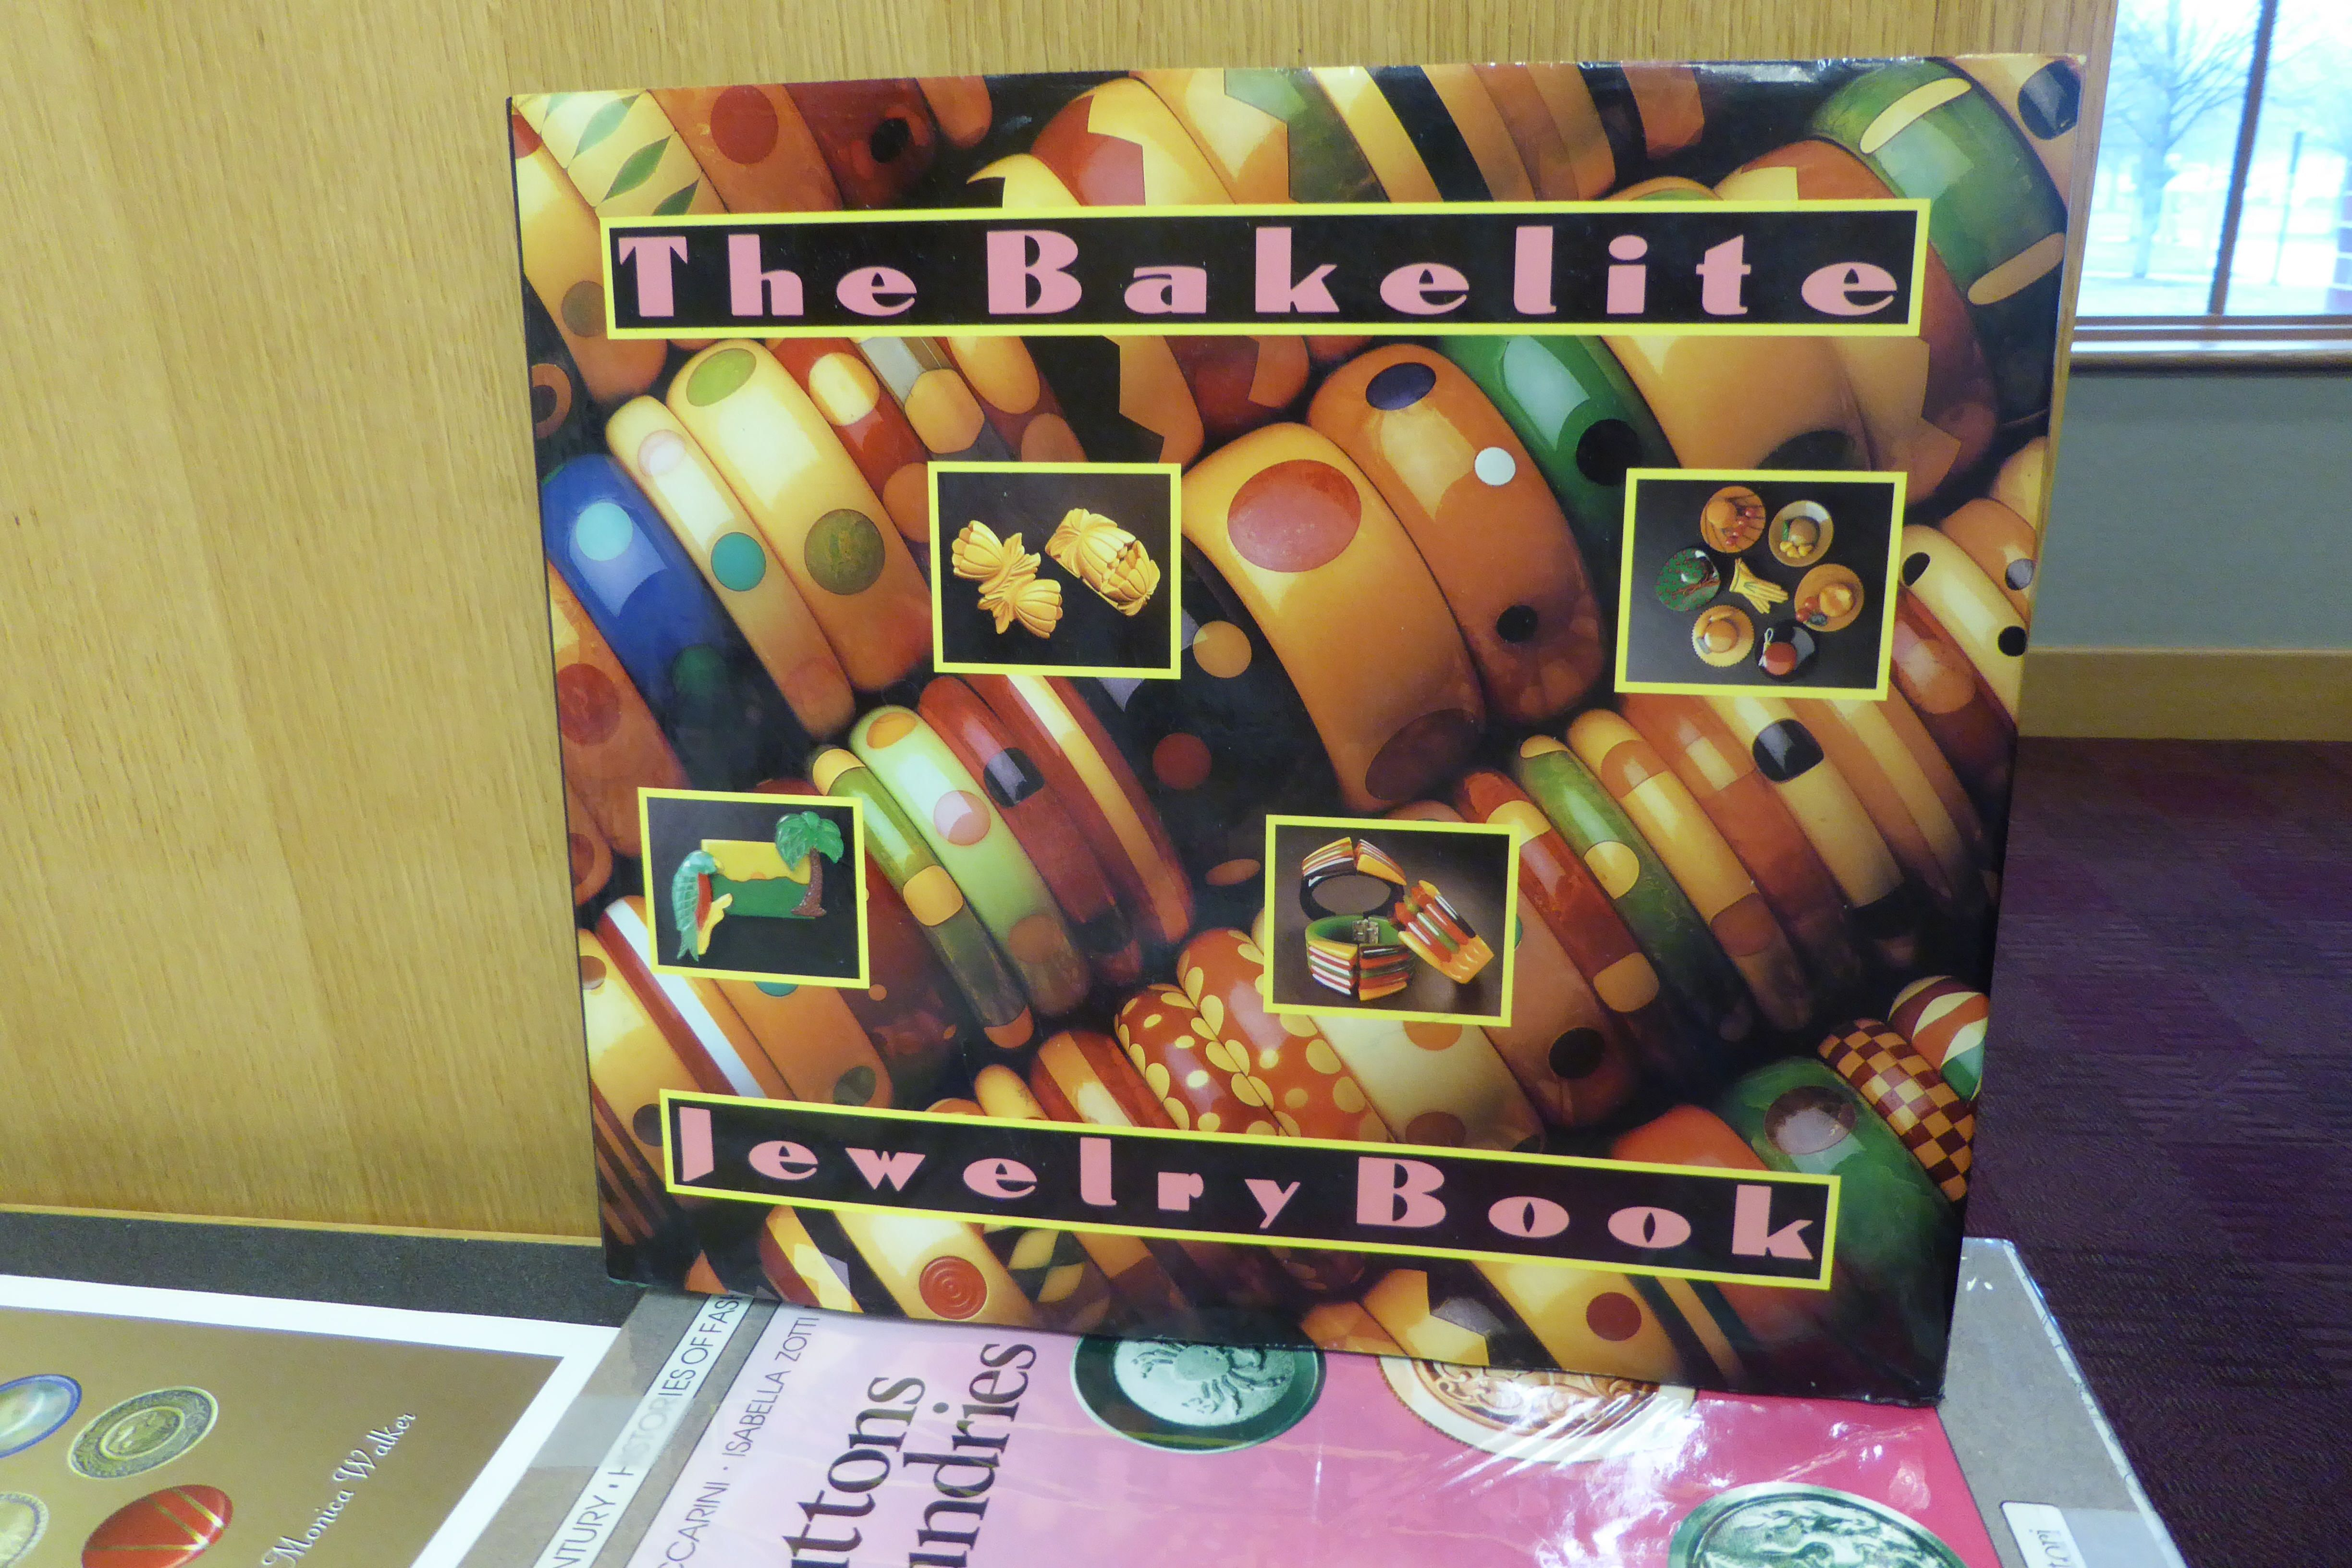 The Bakelite Jewelry Book by Corinne Davidov.  During recent years, the Bakelite jewelry of the 1930s has become a trendy and popular fashion accessory and much-valued collectible. The authors have assembled here the greatest array ever seen of Bakelite jewelry. 160 illustrations, 150 in color.